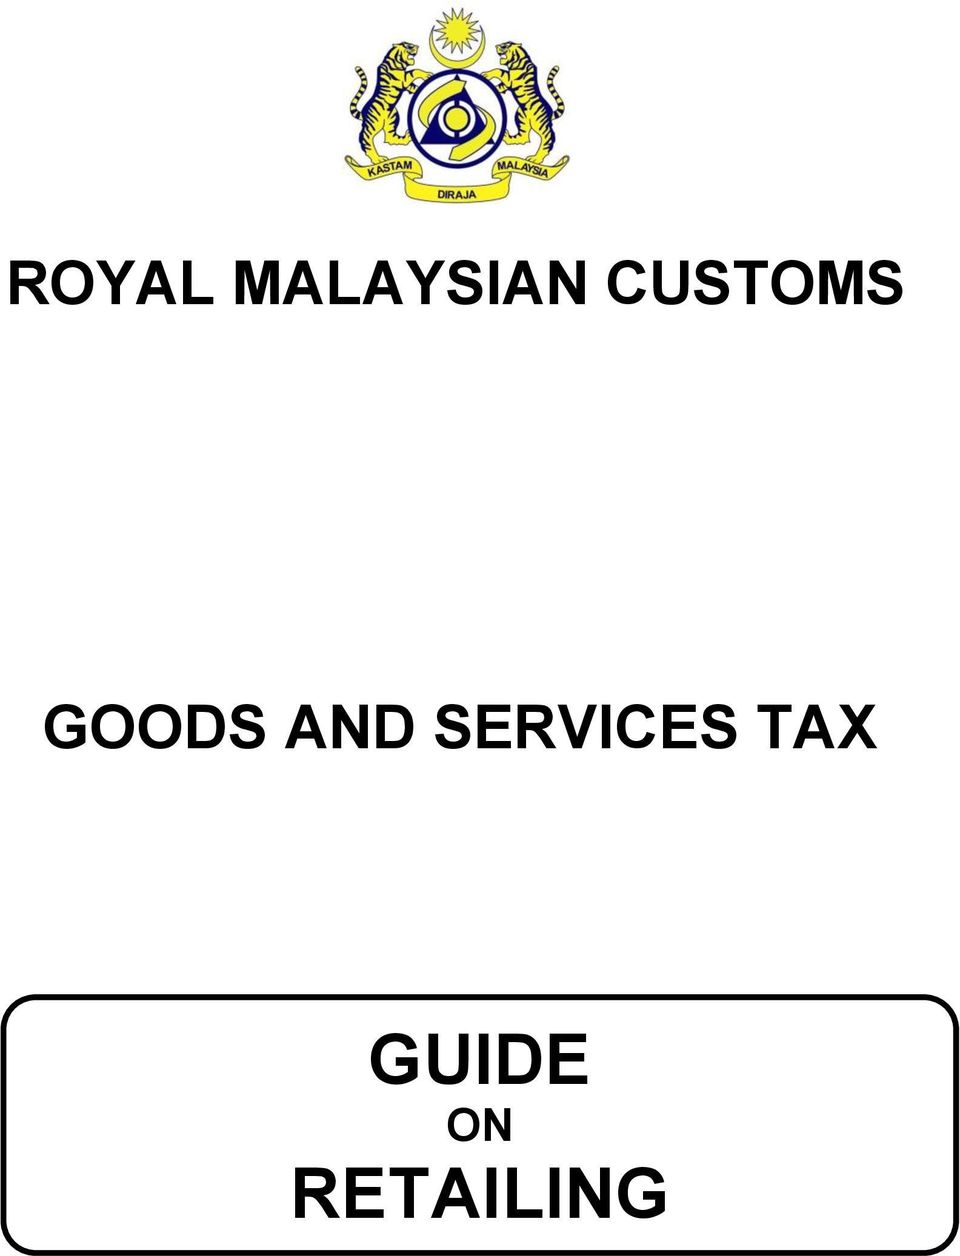 AND SERVICES TAX